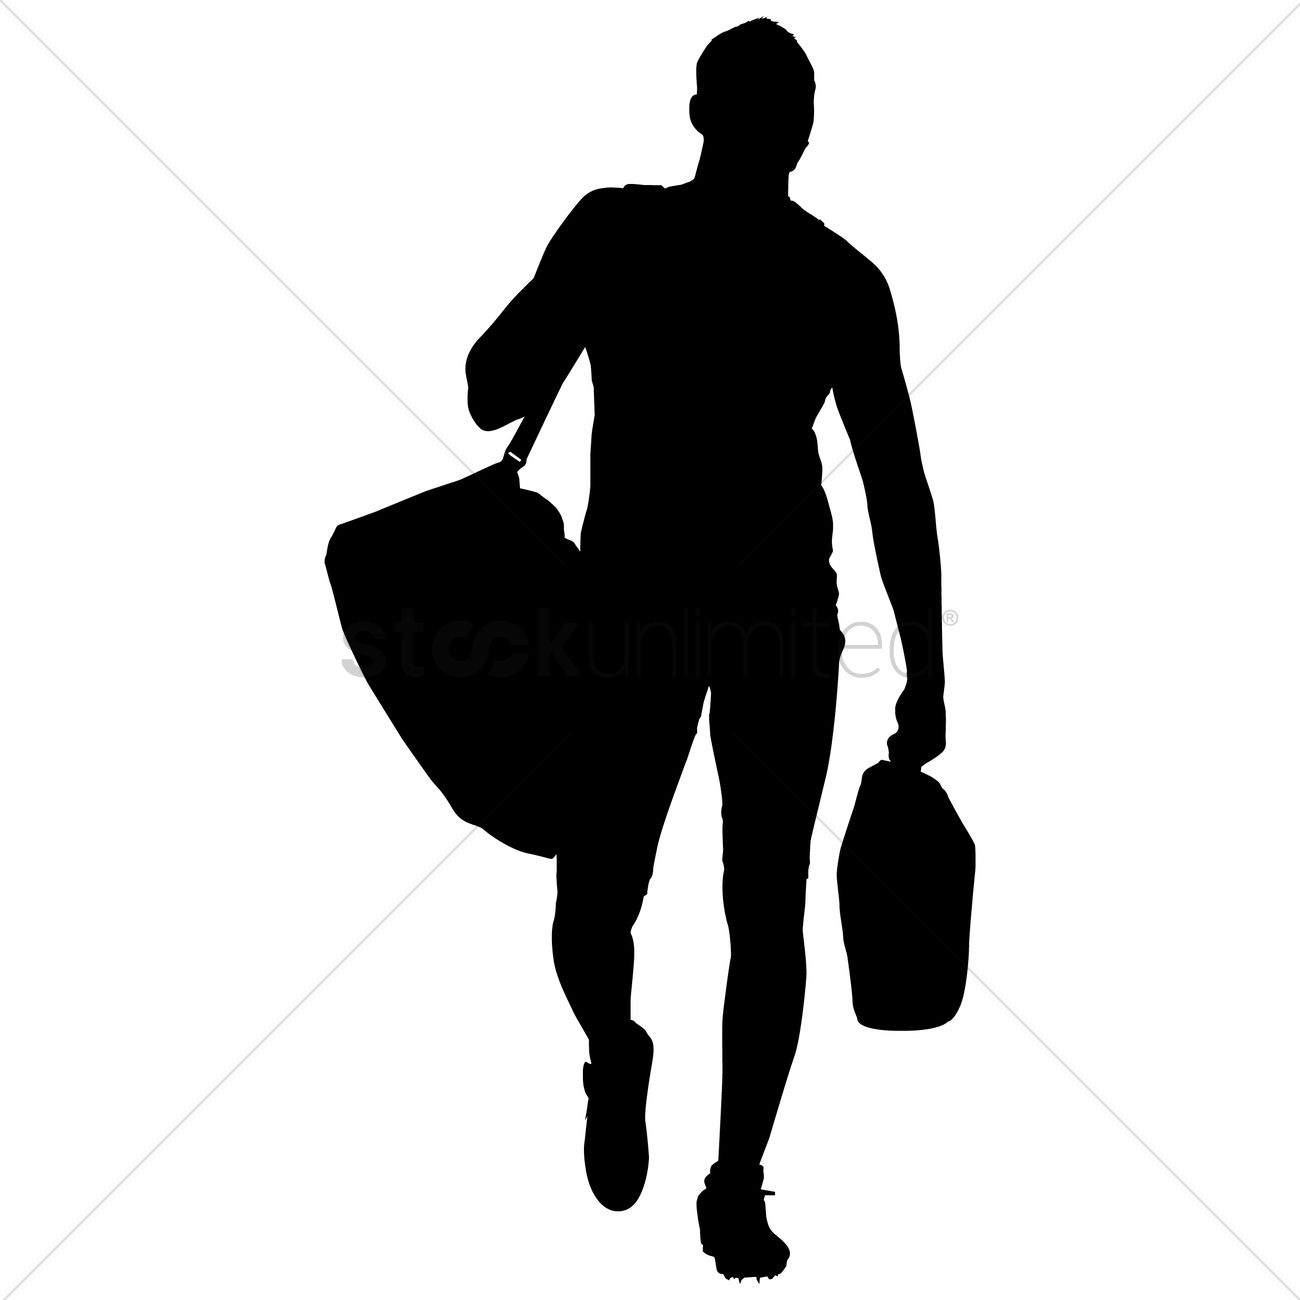 Silhouette of a man with bag Vector Image - 1253889 | StockUnlimited